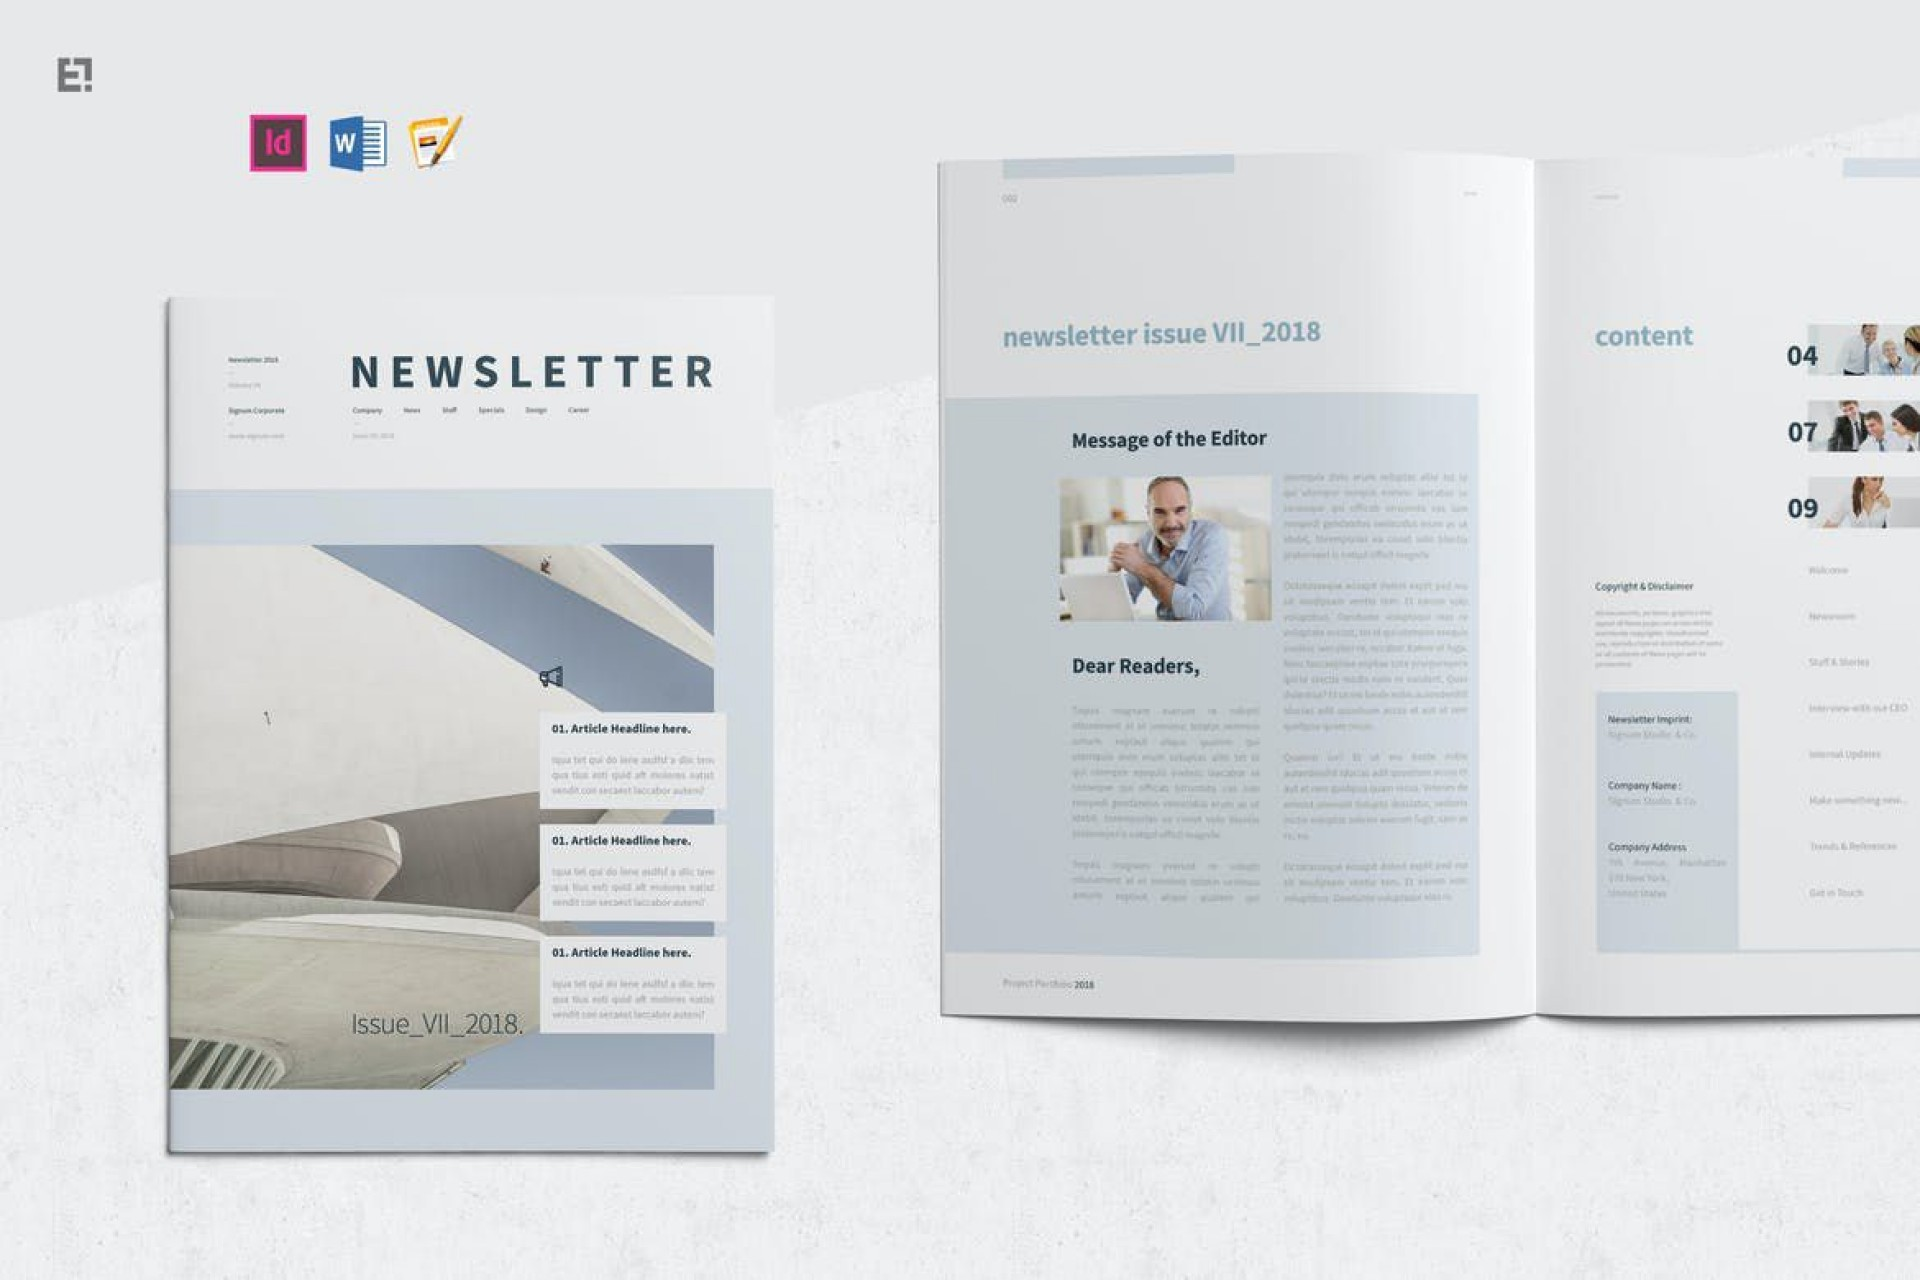 005 Formidable Indesign Cs6 Newsletter Template Free Download Sample 1920